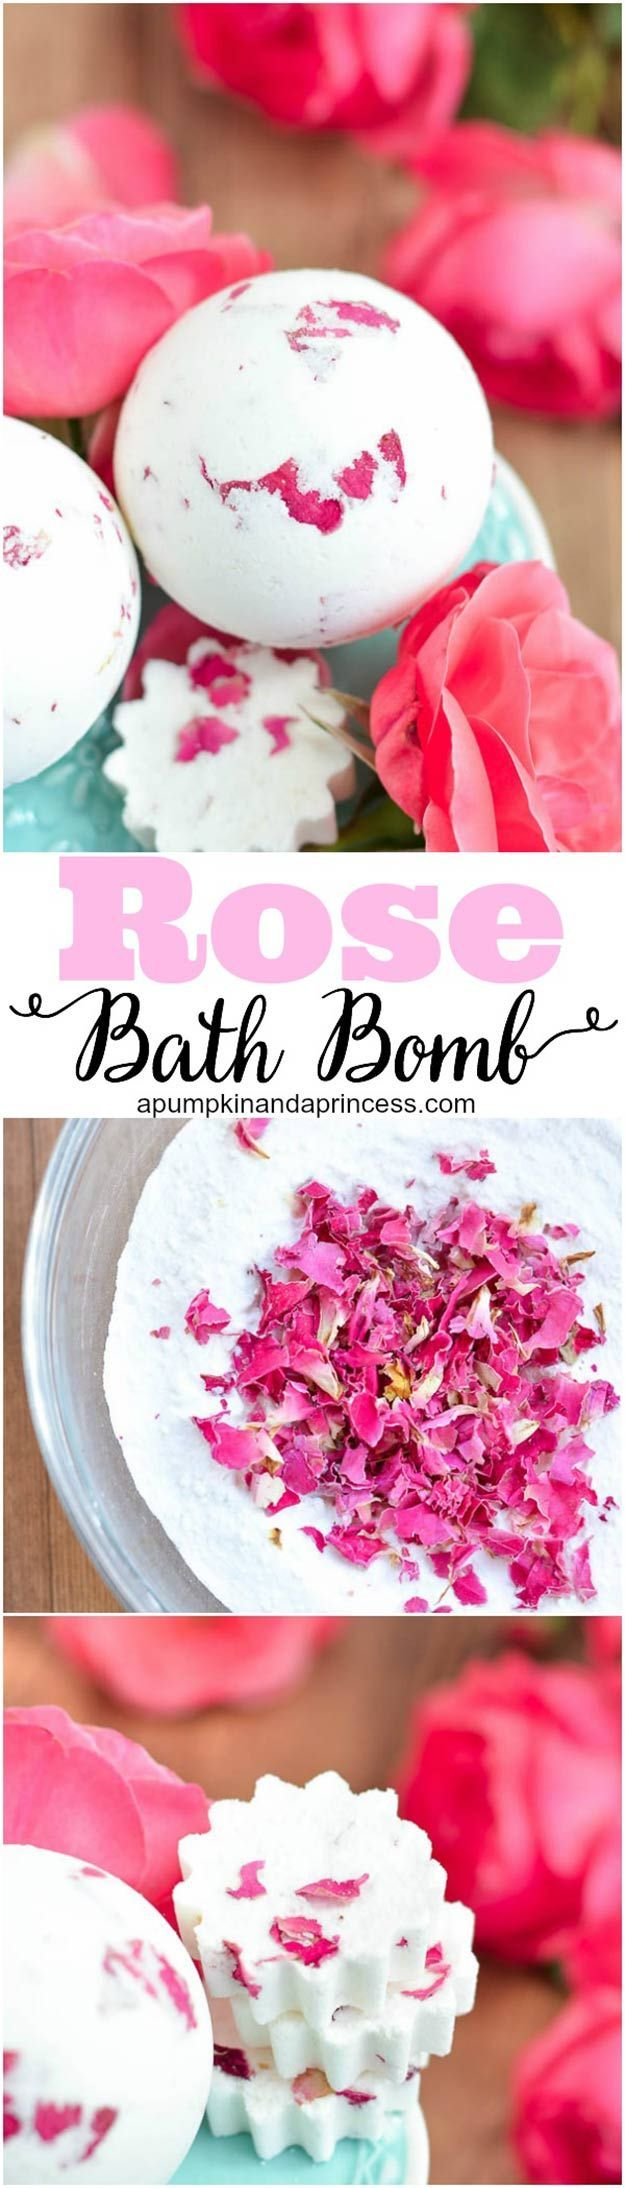 best bath boms images on pinterest bath bomb soaps and bombshells